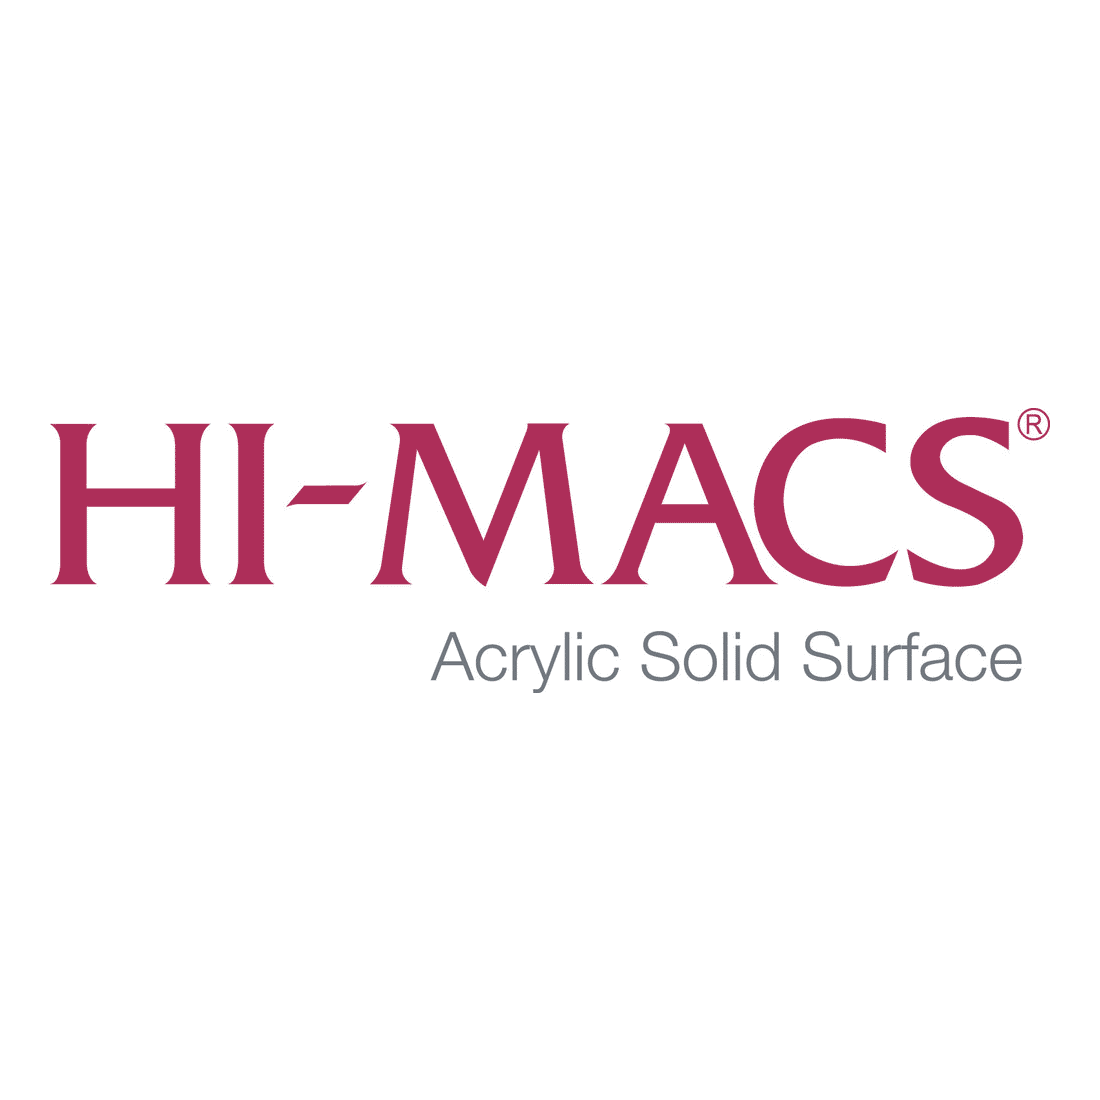 Lg Hi Macs Solid Surfaces Offer A Stunning Palette Of 113 Acrylic Surface Colors Giving You Design Ideas Without Limits From Bold And Loud To Subtle